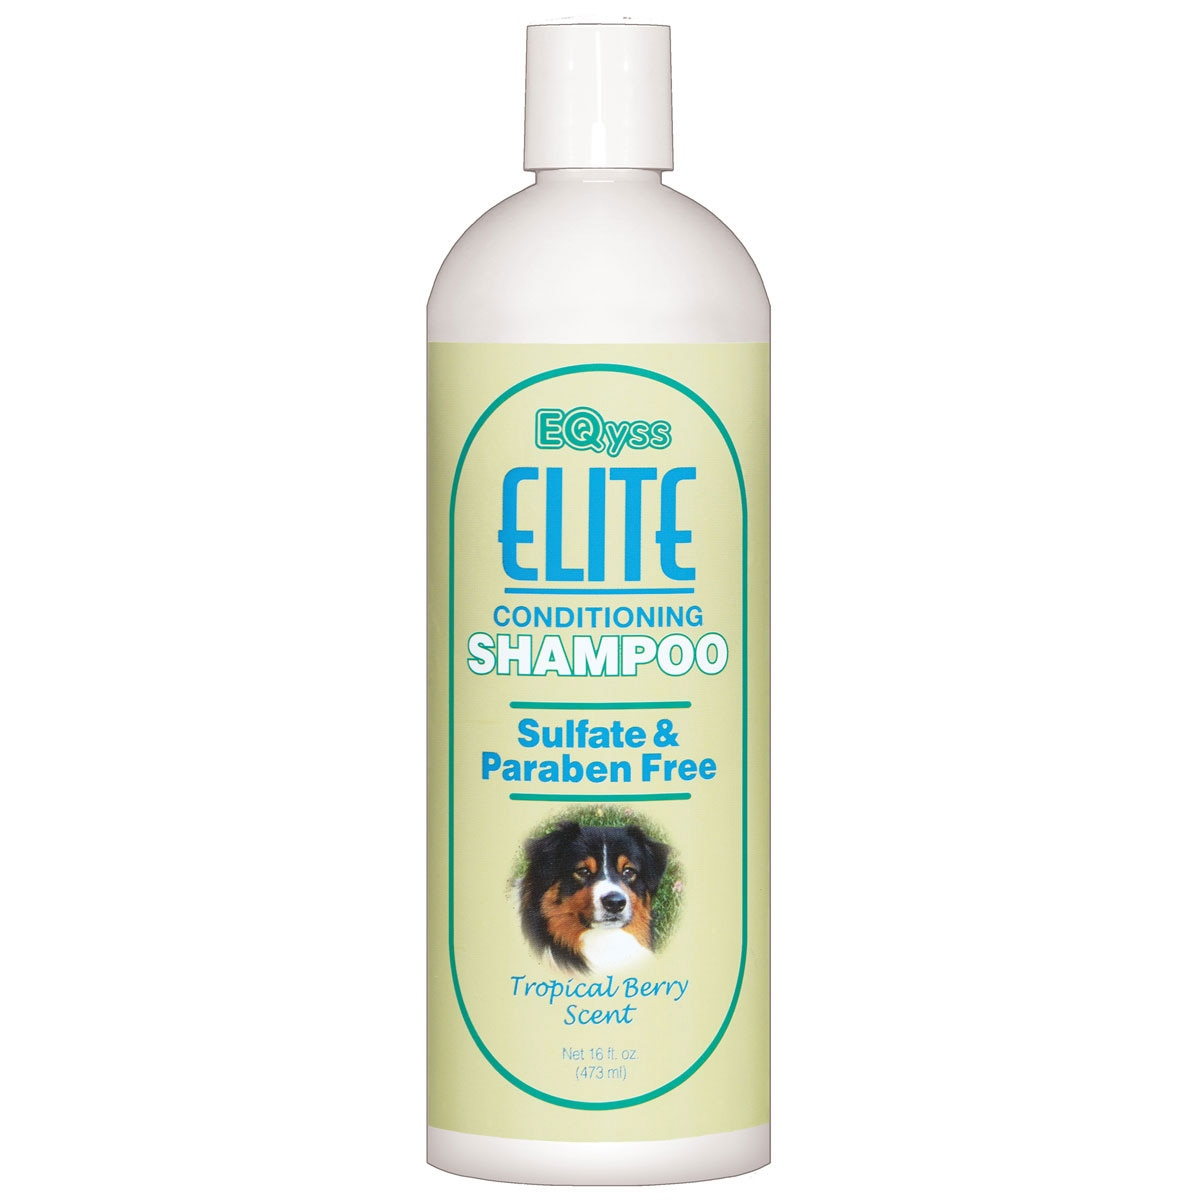 EQyss Elite Conditioning Shampoo